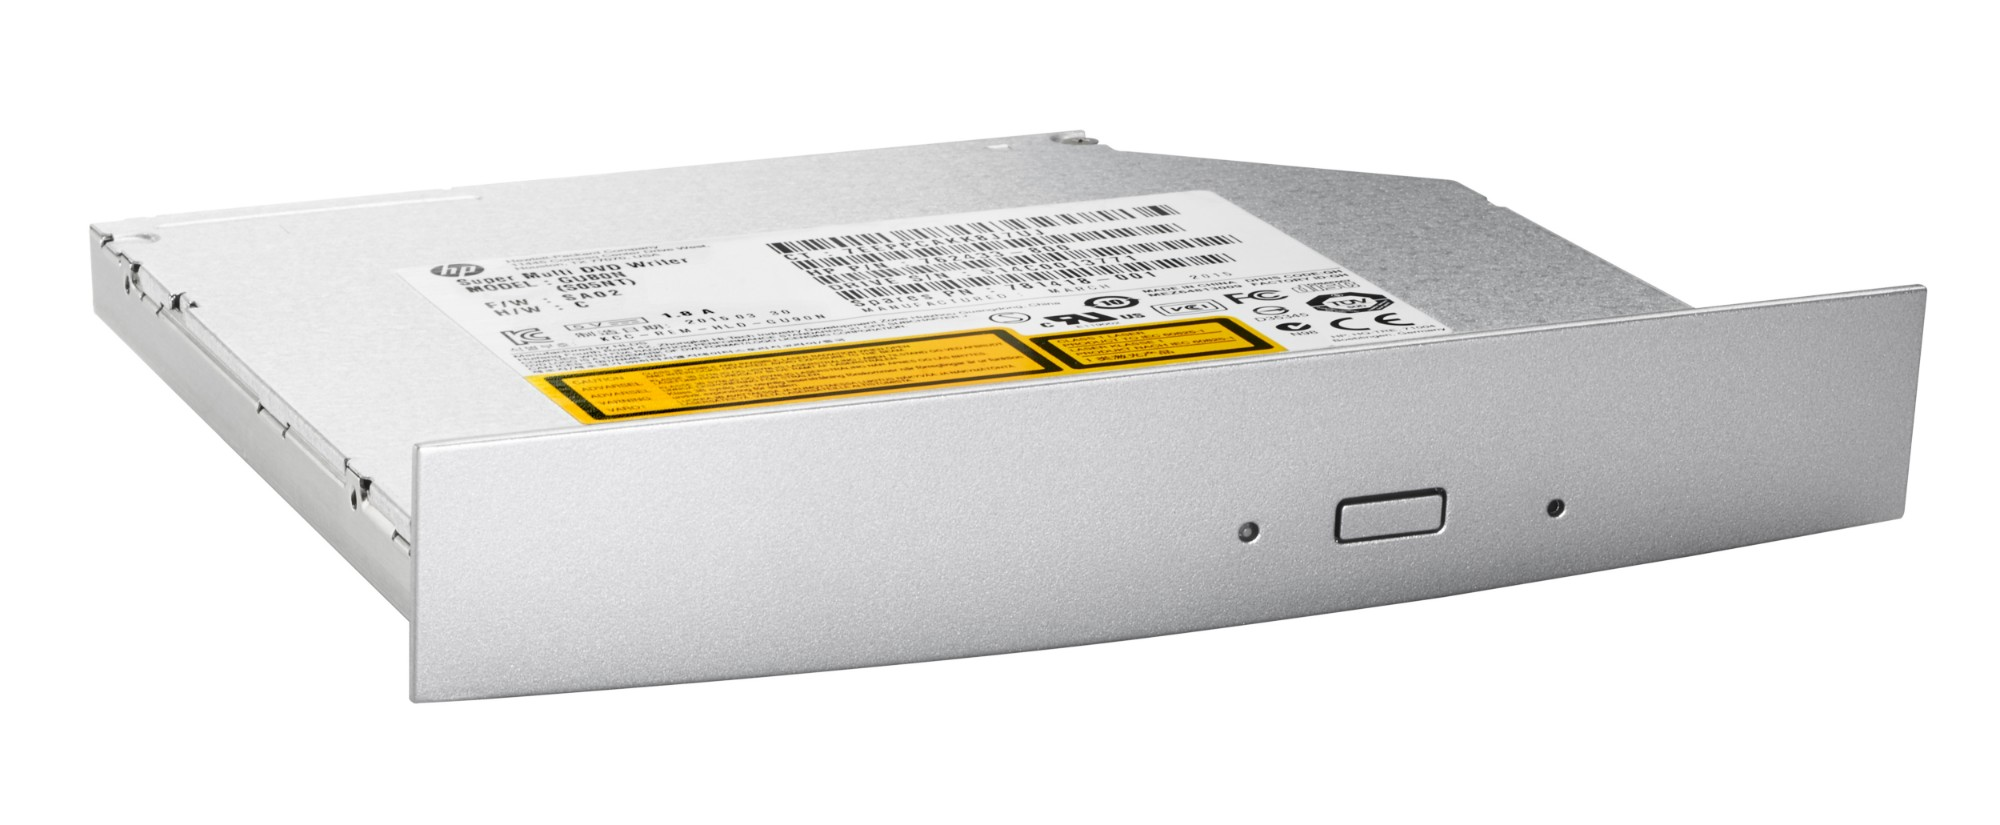 HP 9.5mm AIO 705/800 G2 Slim DVD Writer (N3S10AA)